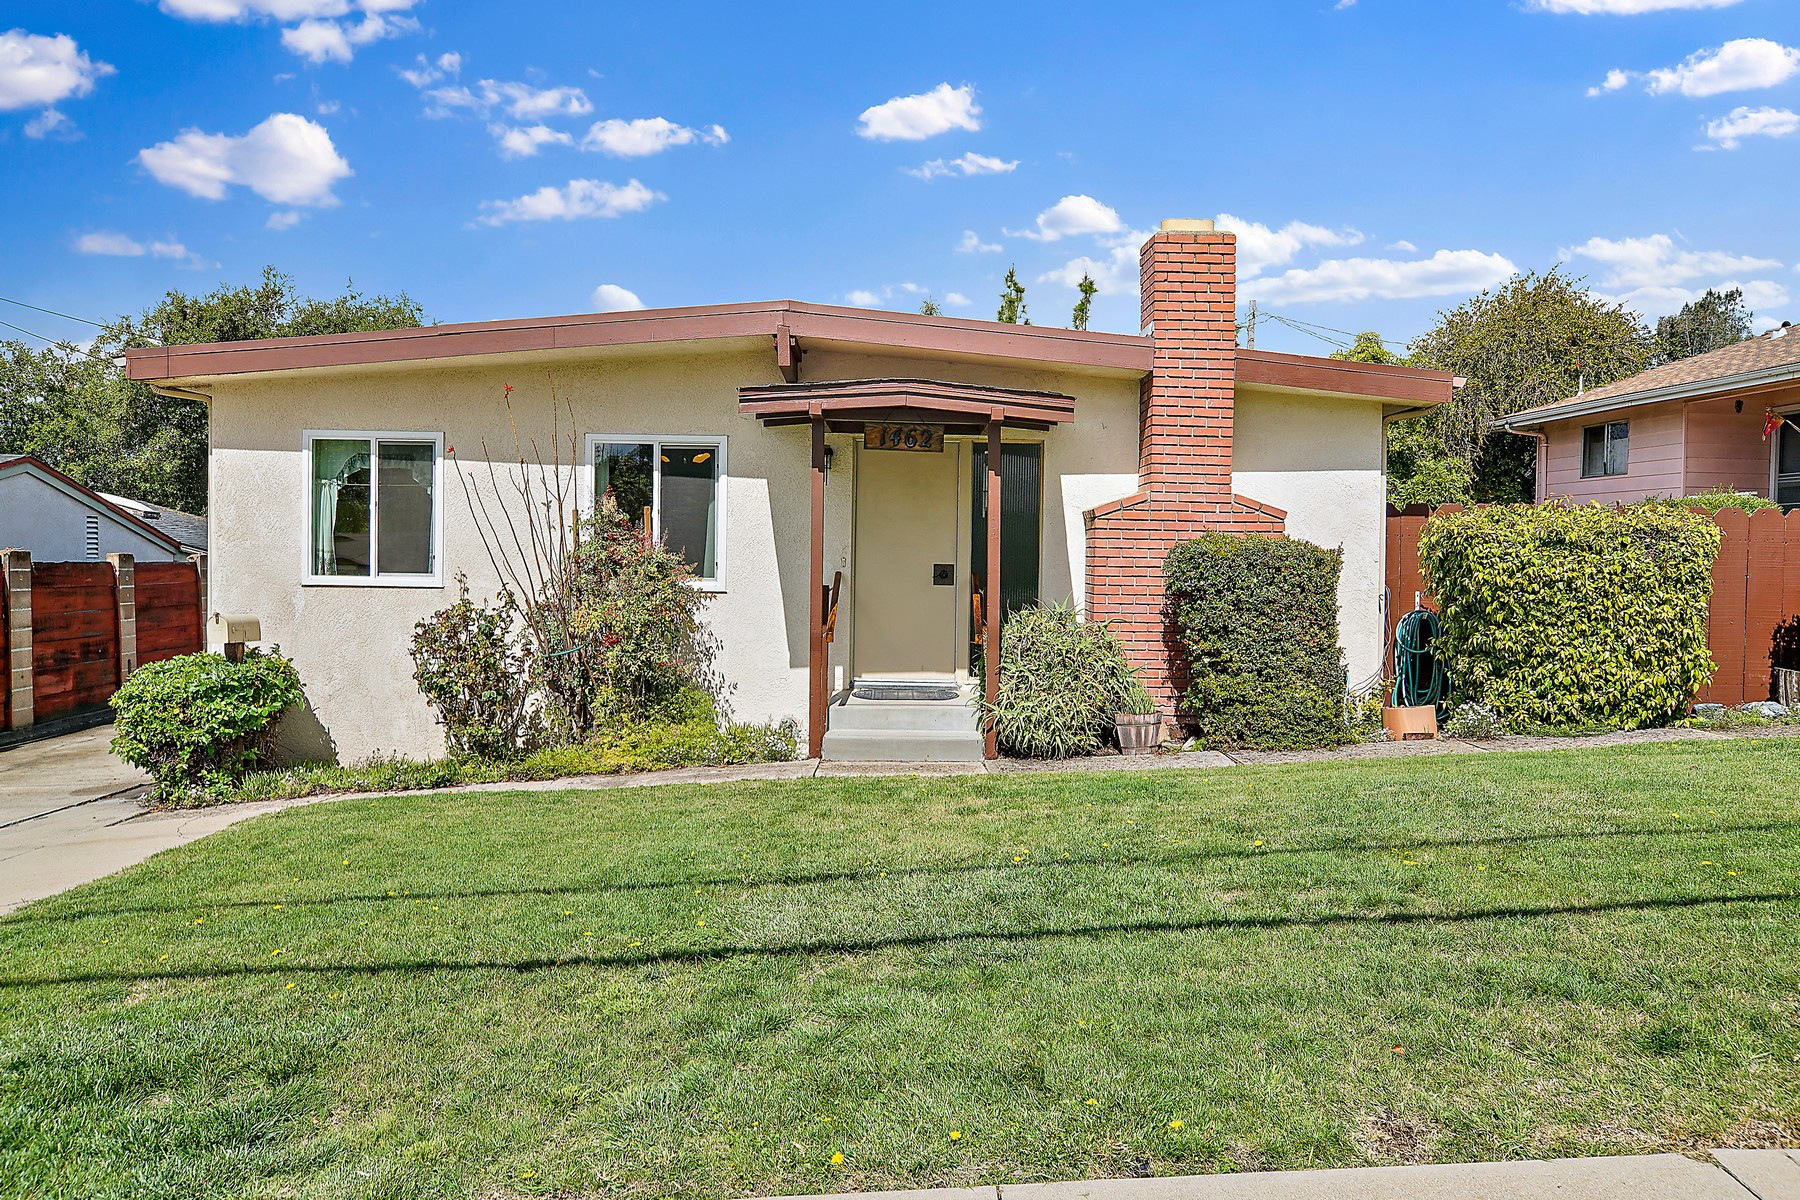 Single Family Homes for Sale at Sinsheimer Area Home with Potential 1462 Laurel Lane San Luis Obispo, California 93401 United States